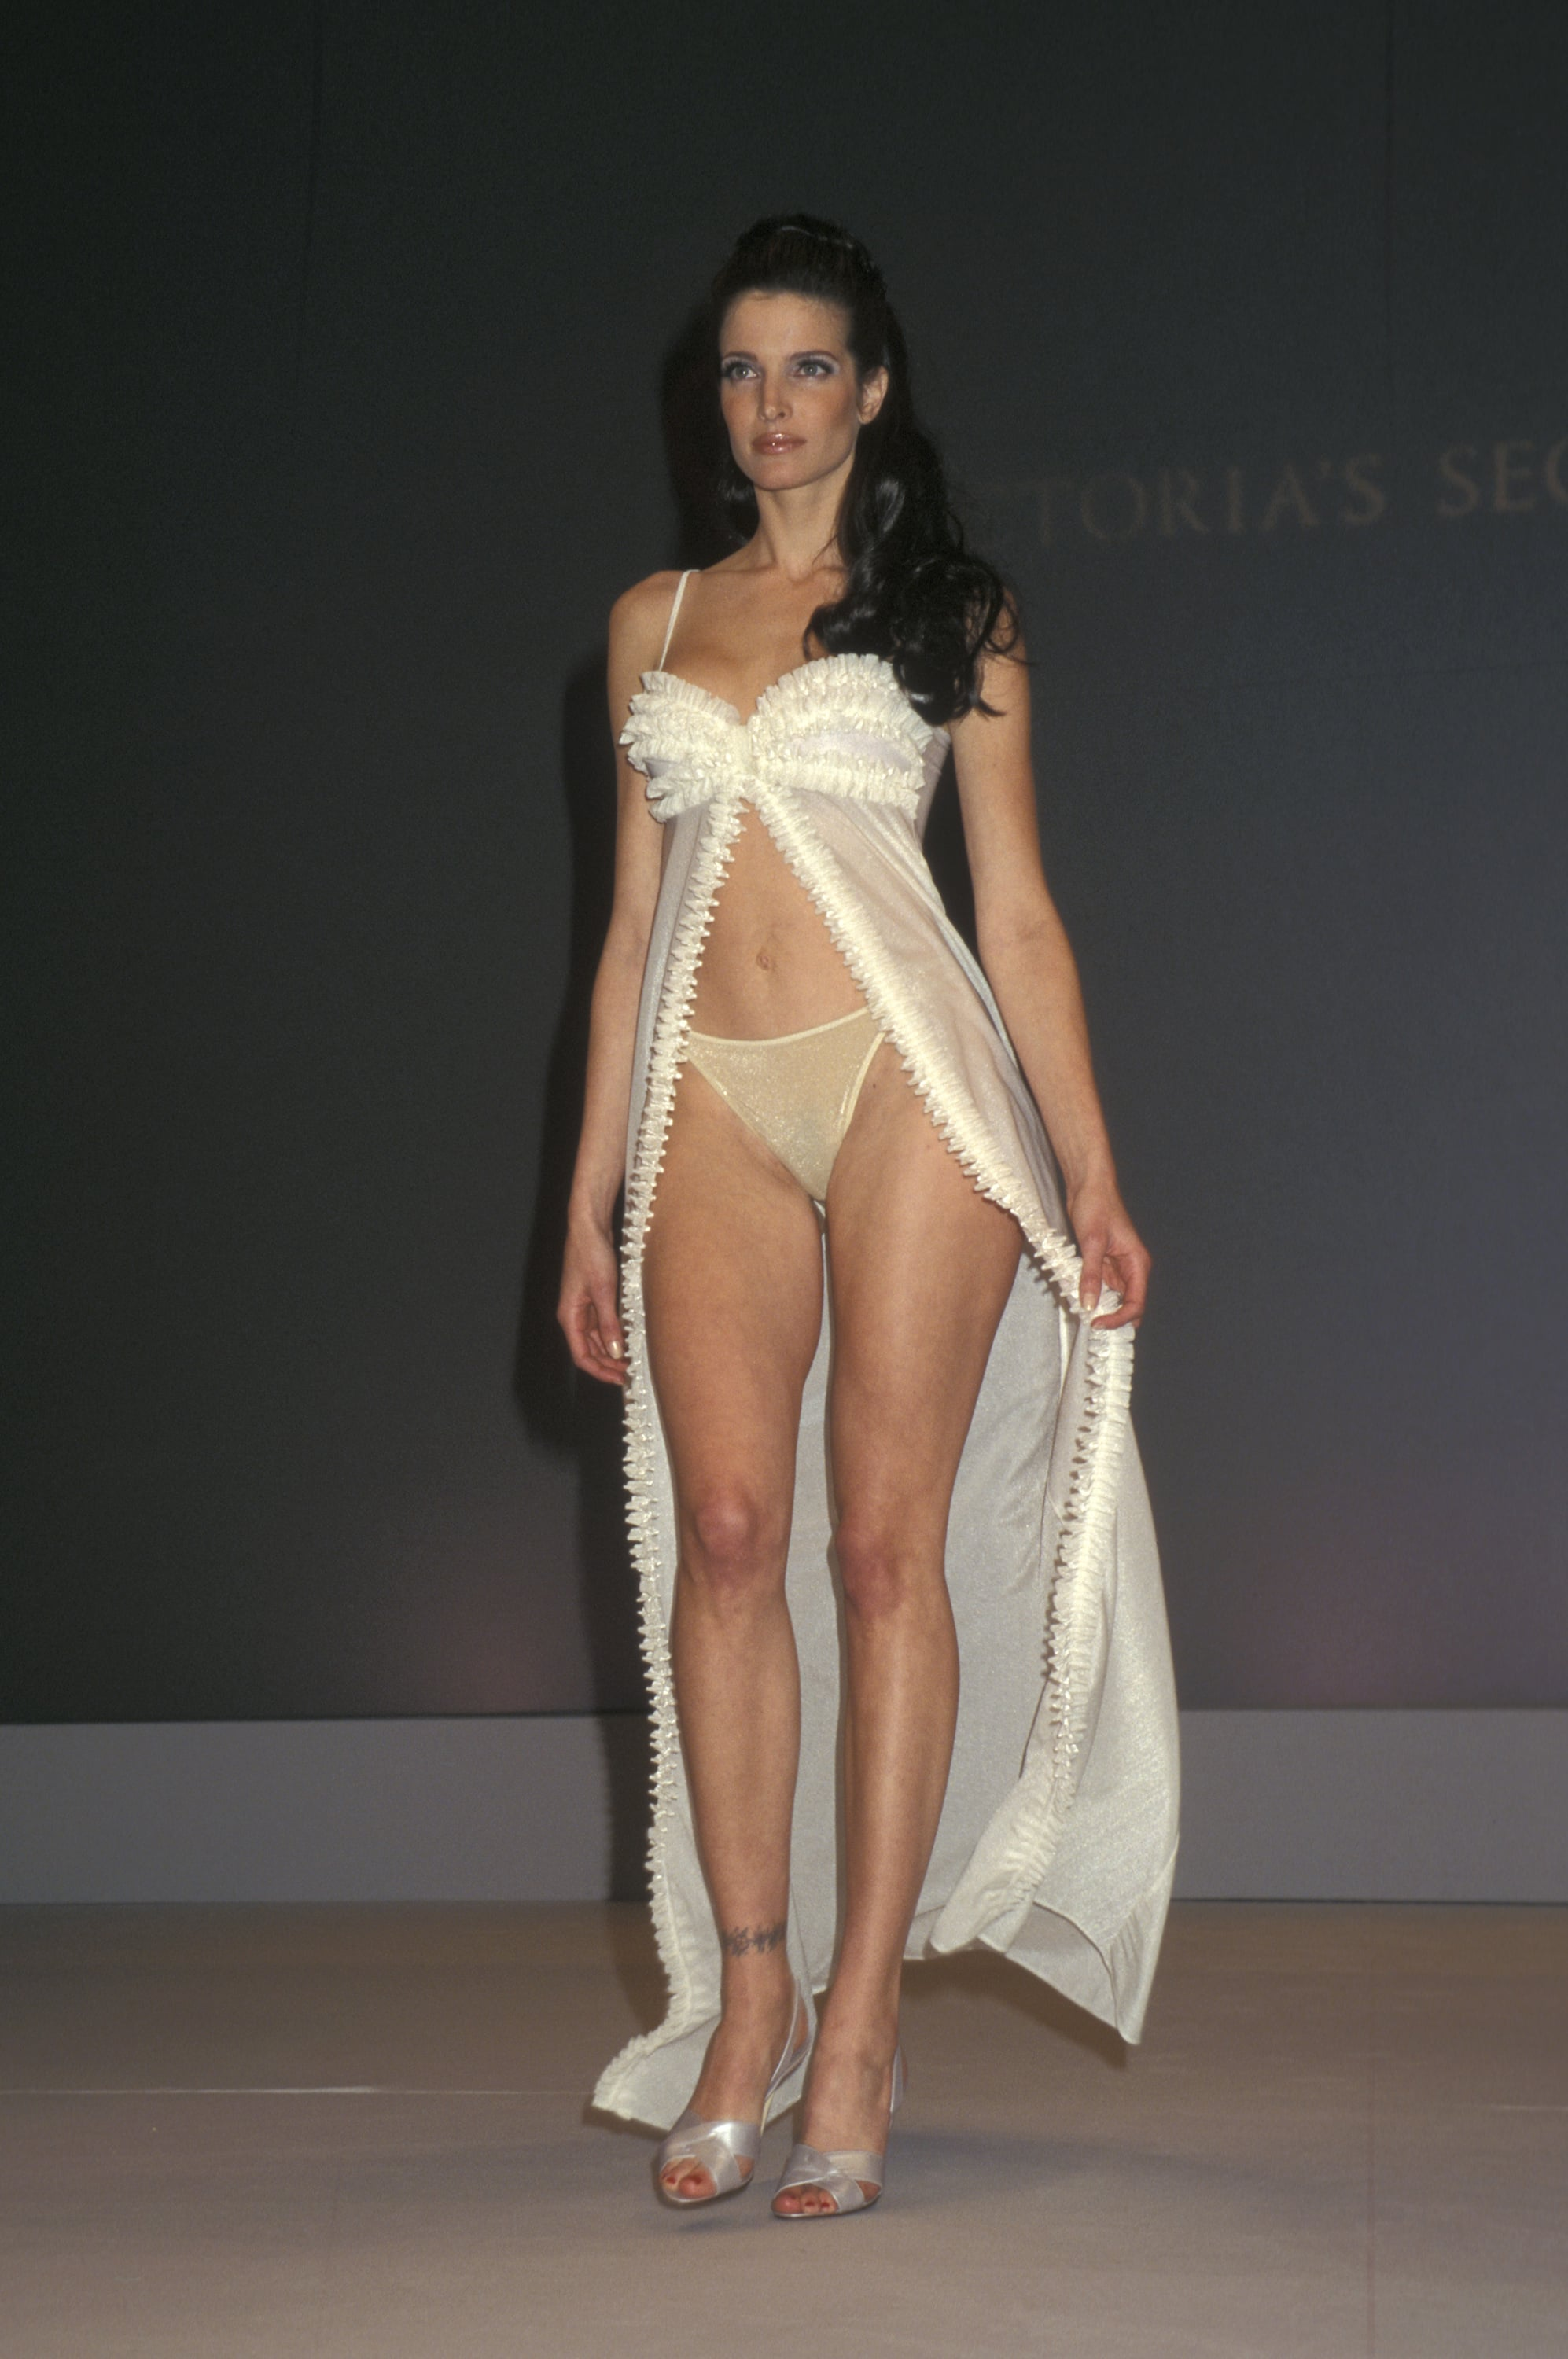 Stephanie Seymour walked the runway in 1997.